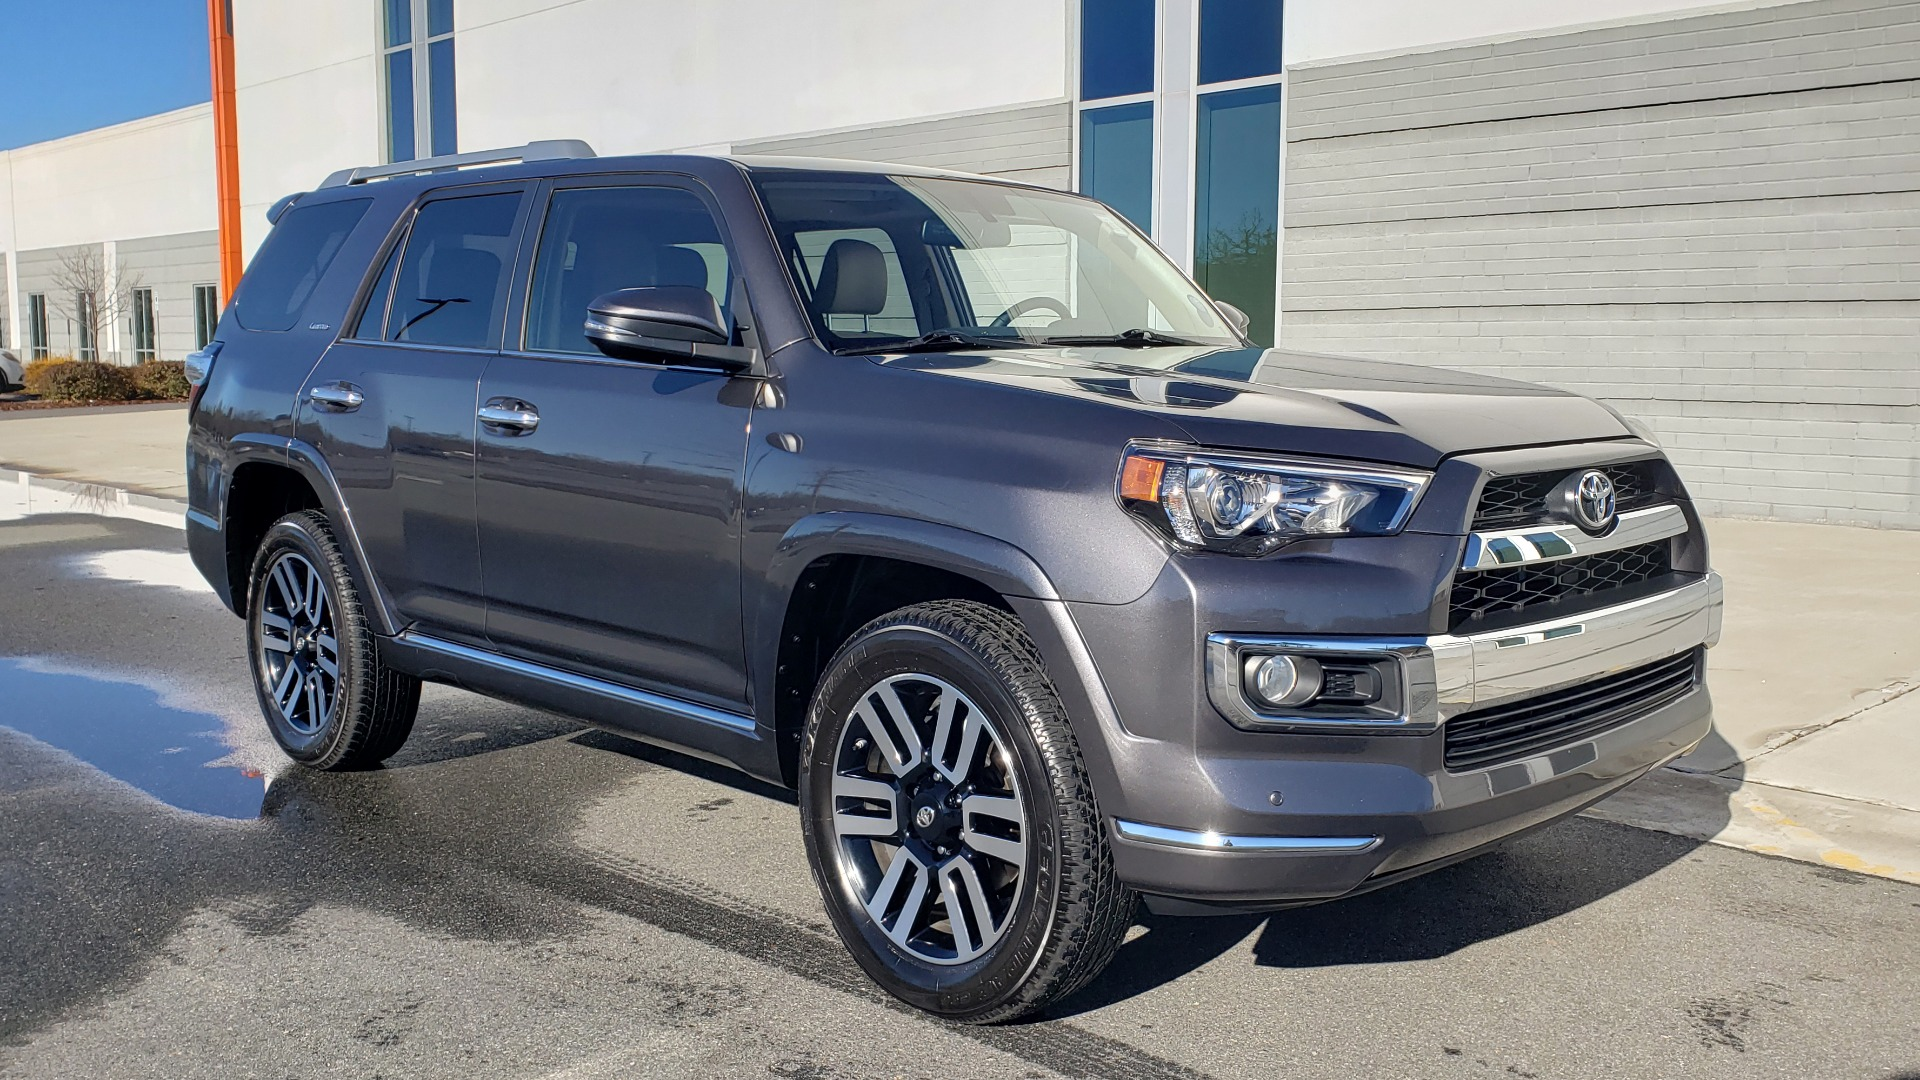 Used 2018 Toyota 4RUNNER LIMITED 4X4 / 4.0 V6 / AUTO / NAV / SUNROOF / REARVIEW for sale Sold at Formula Imports in Charlotte NC 28227 5